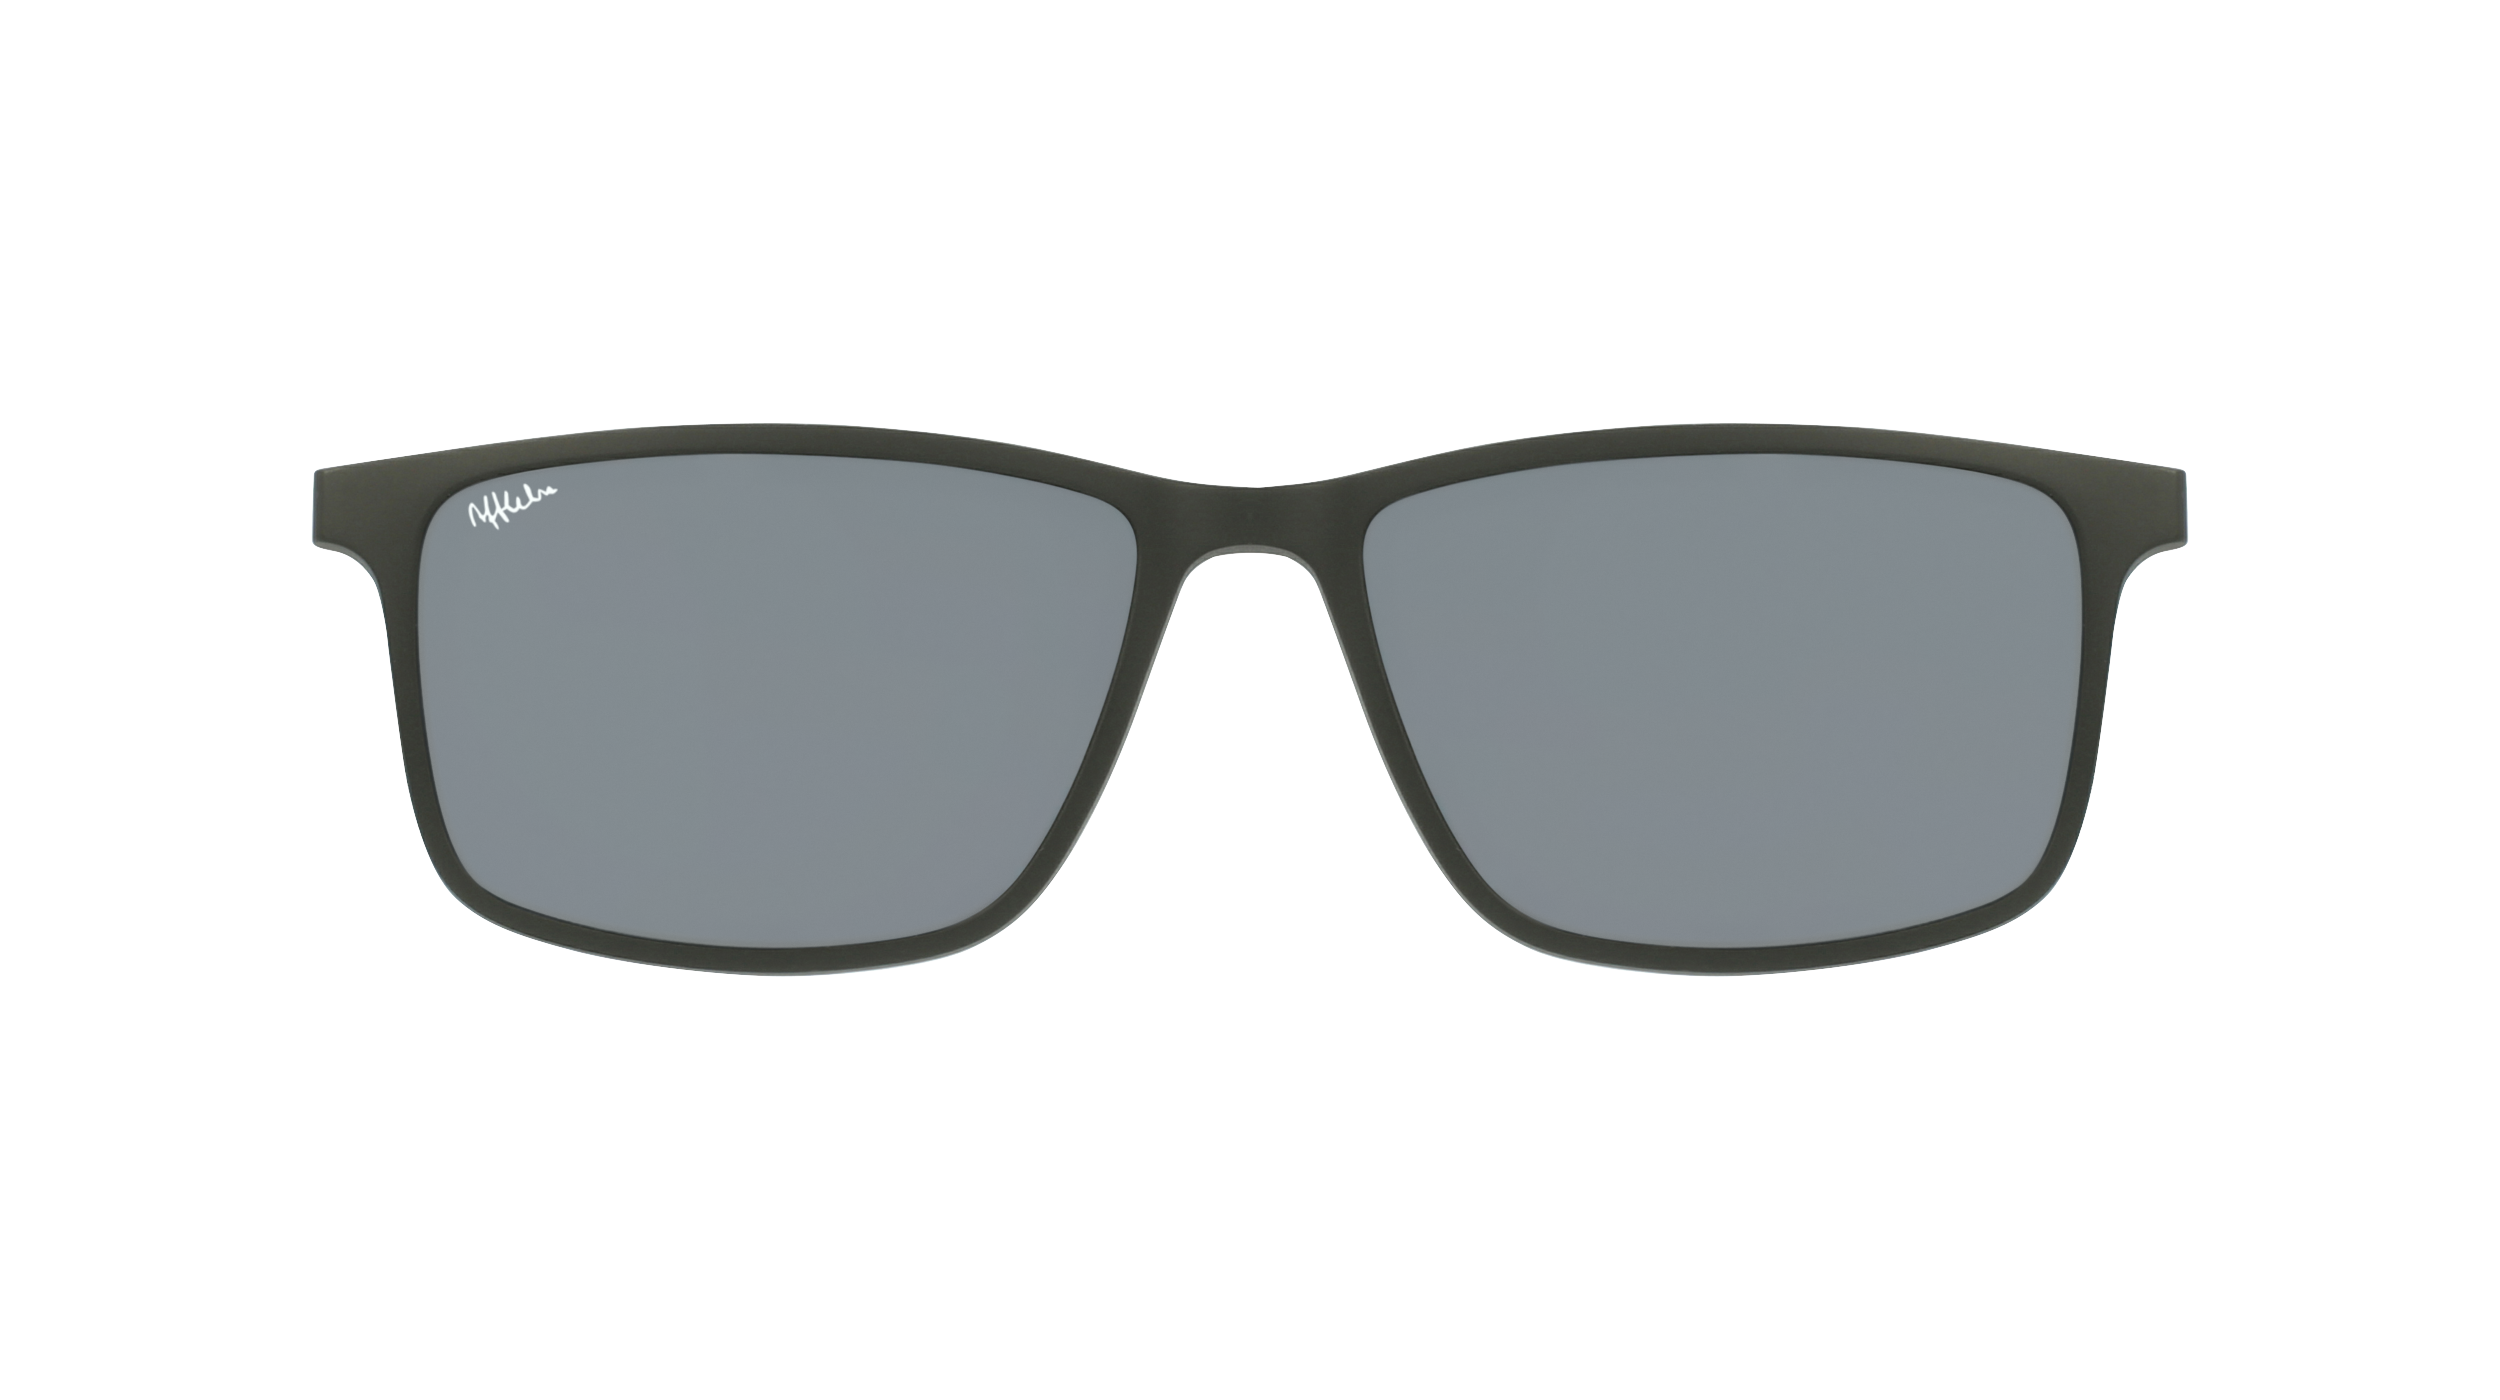 afflelou/france/products/smart_clip/clips_glasses/07630036457009.png